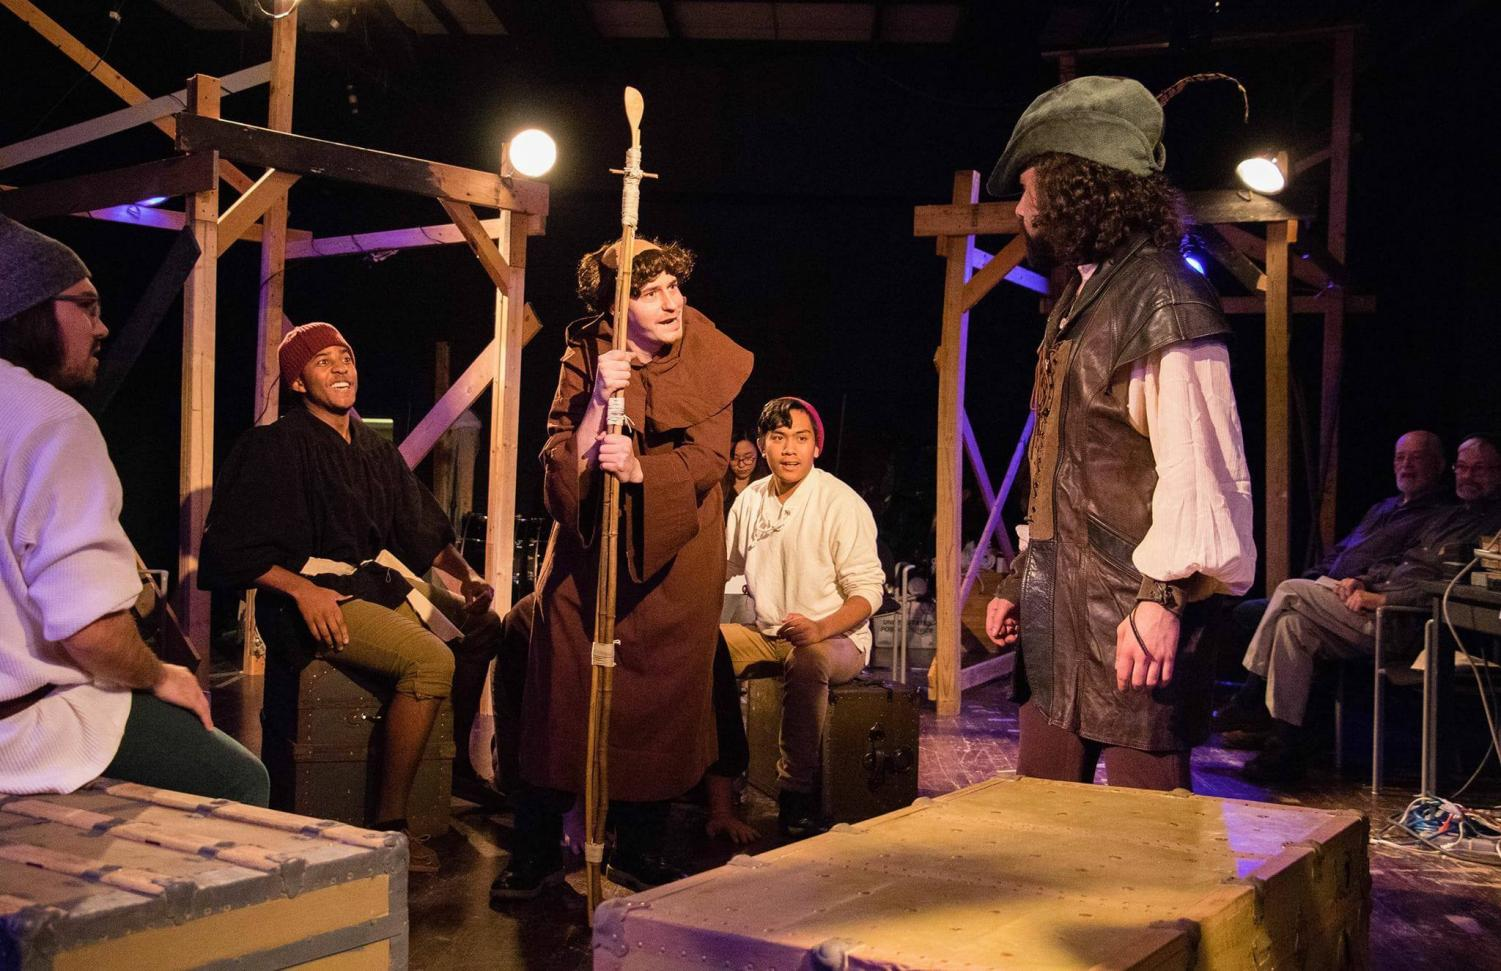 Friar Tuck (front left), played by Jake Johnston, and Robin Hood (right), played by Cristian Galvan, discuss Robin entering the archery tournament. The Merry Men, played by Steven Ulam, Isaac Tolliver, Niko Cabela (from left to right) listen.